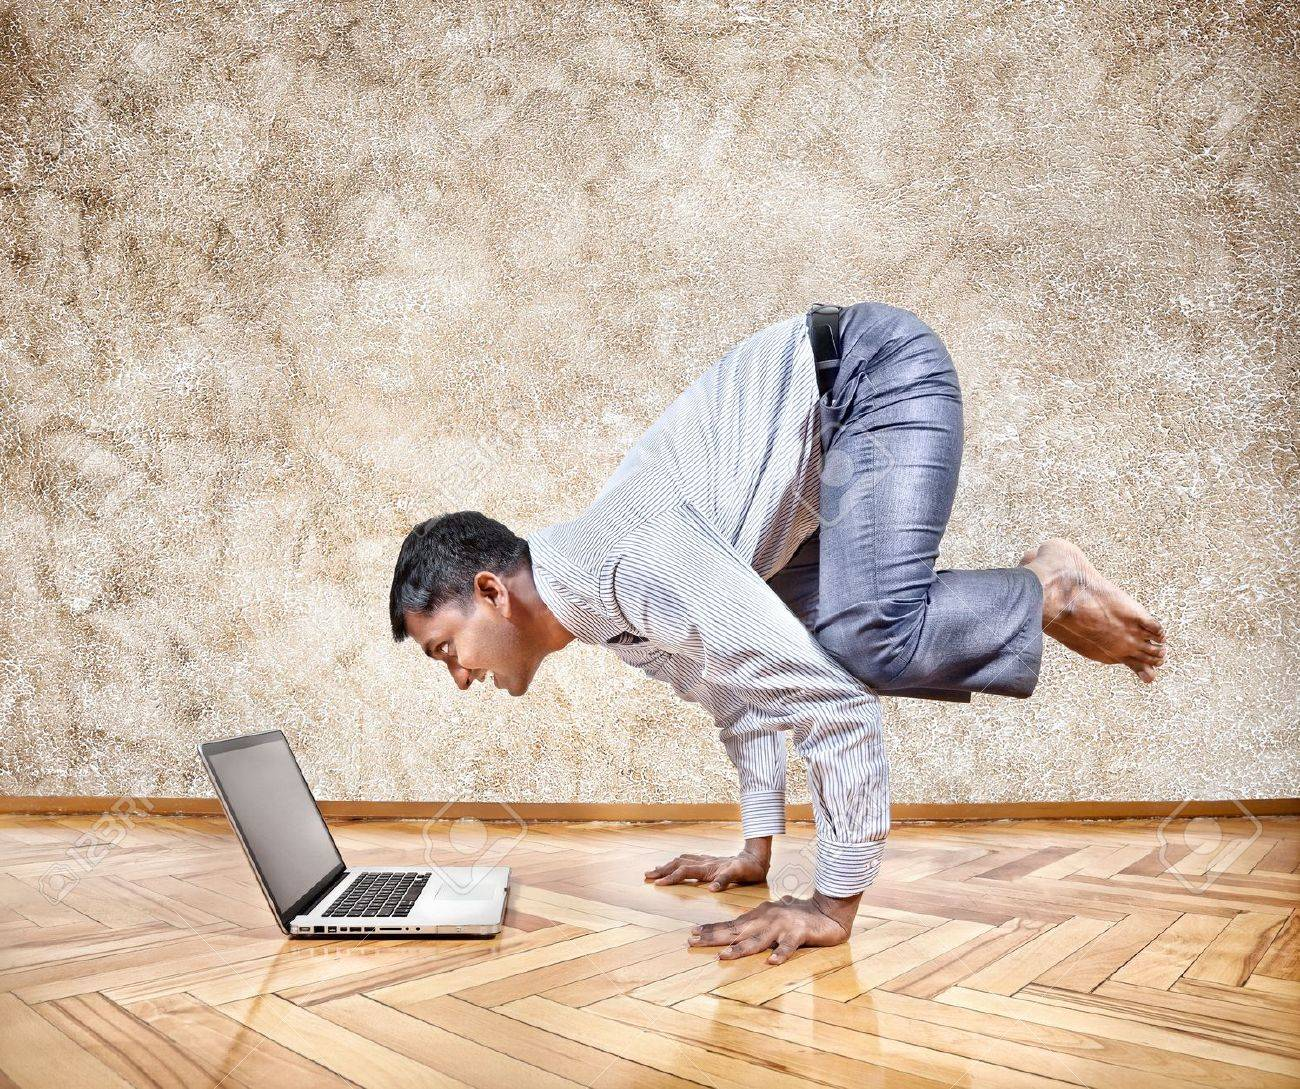 Indian businessman doing yoga hand stand pose and looking at his laptop in the office at brown textured background Stock Photo - 17054923